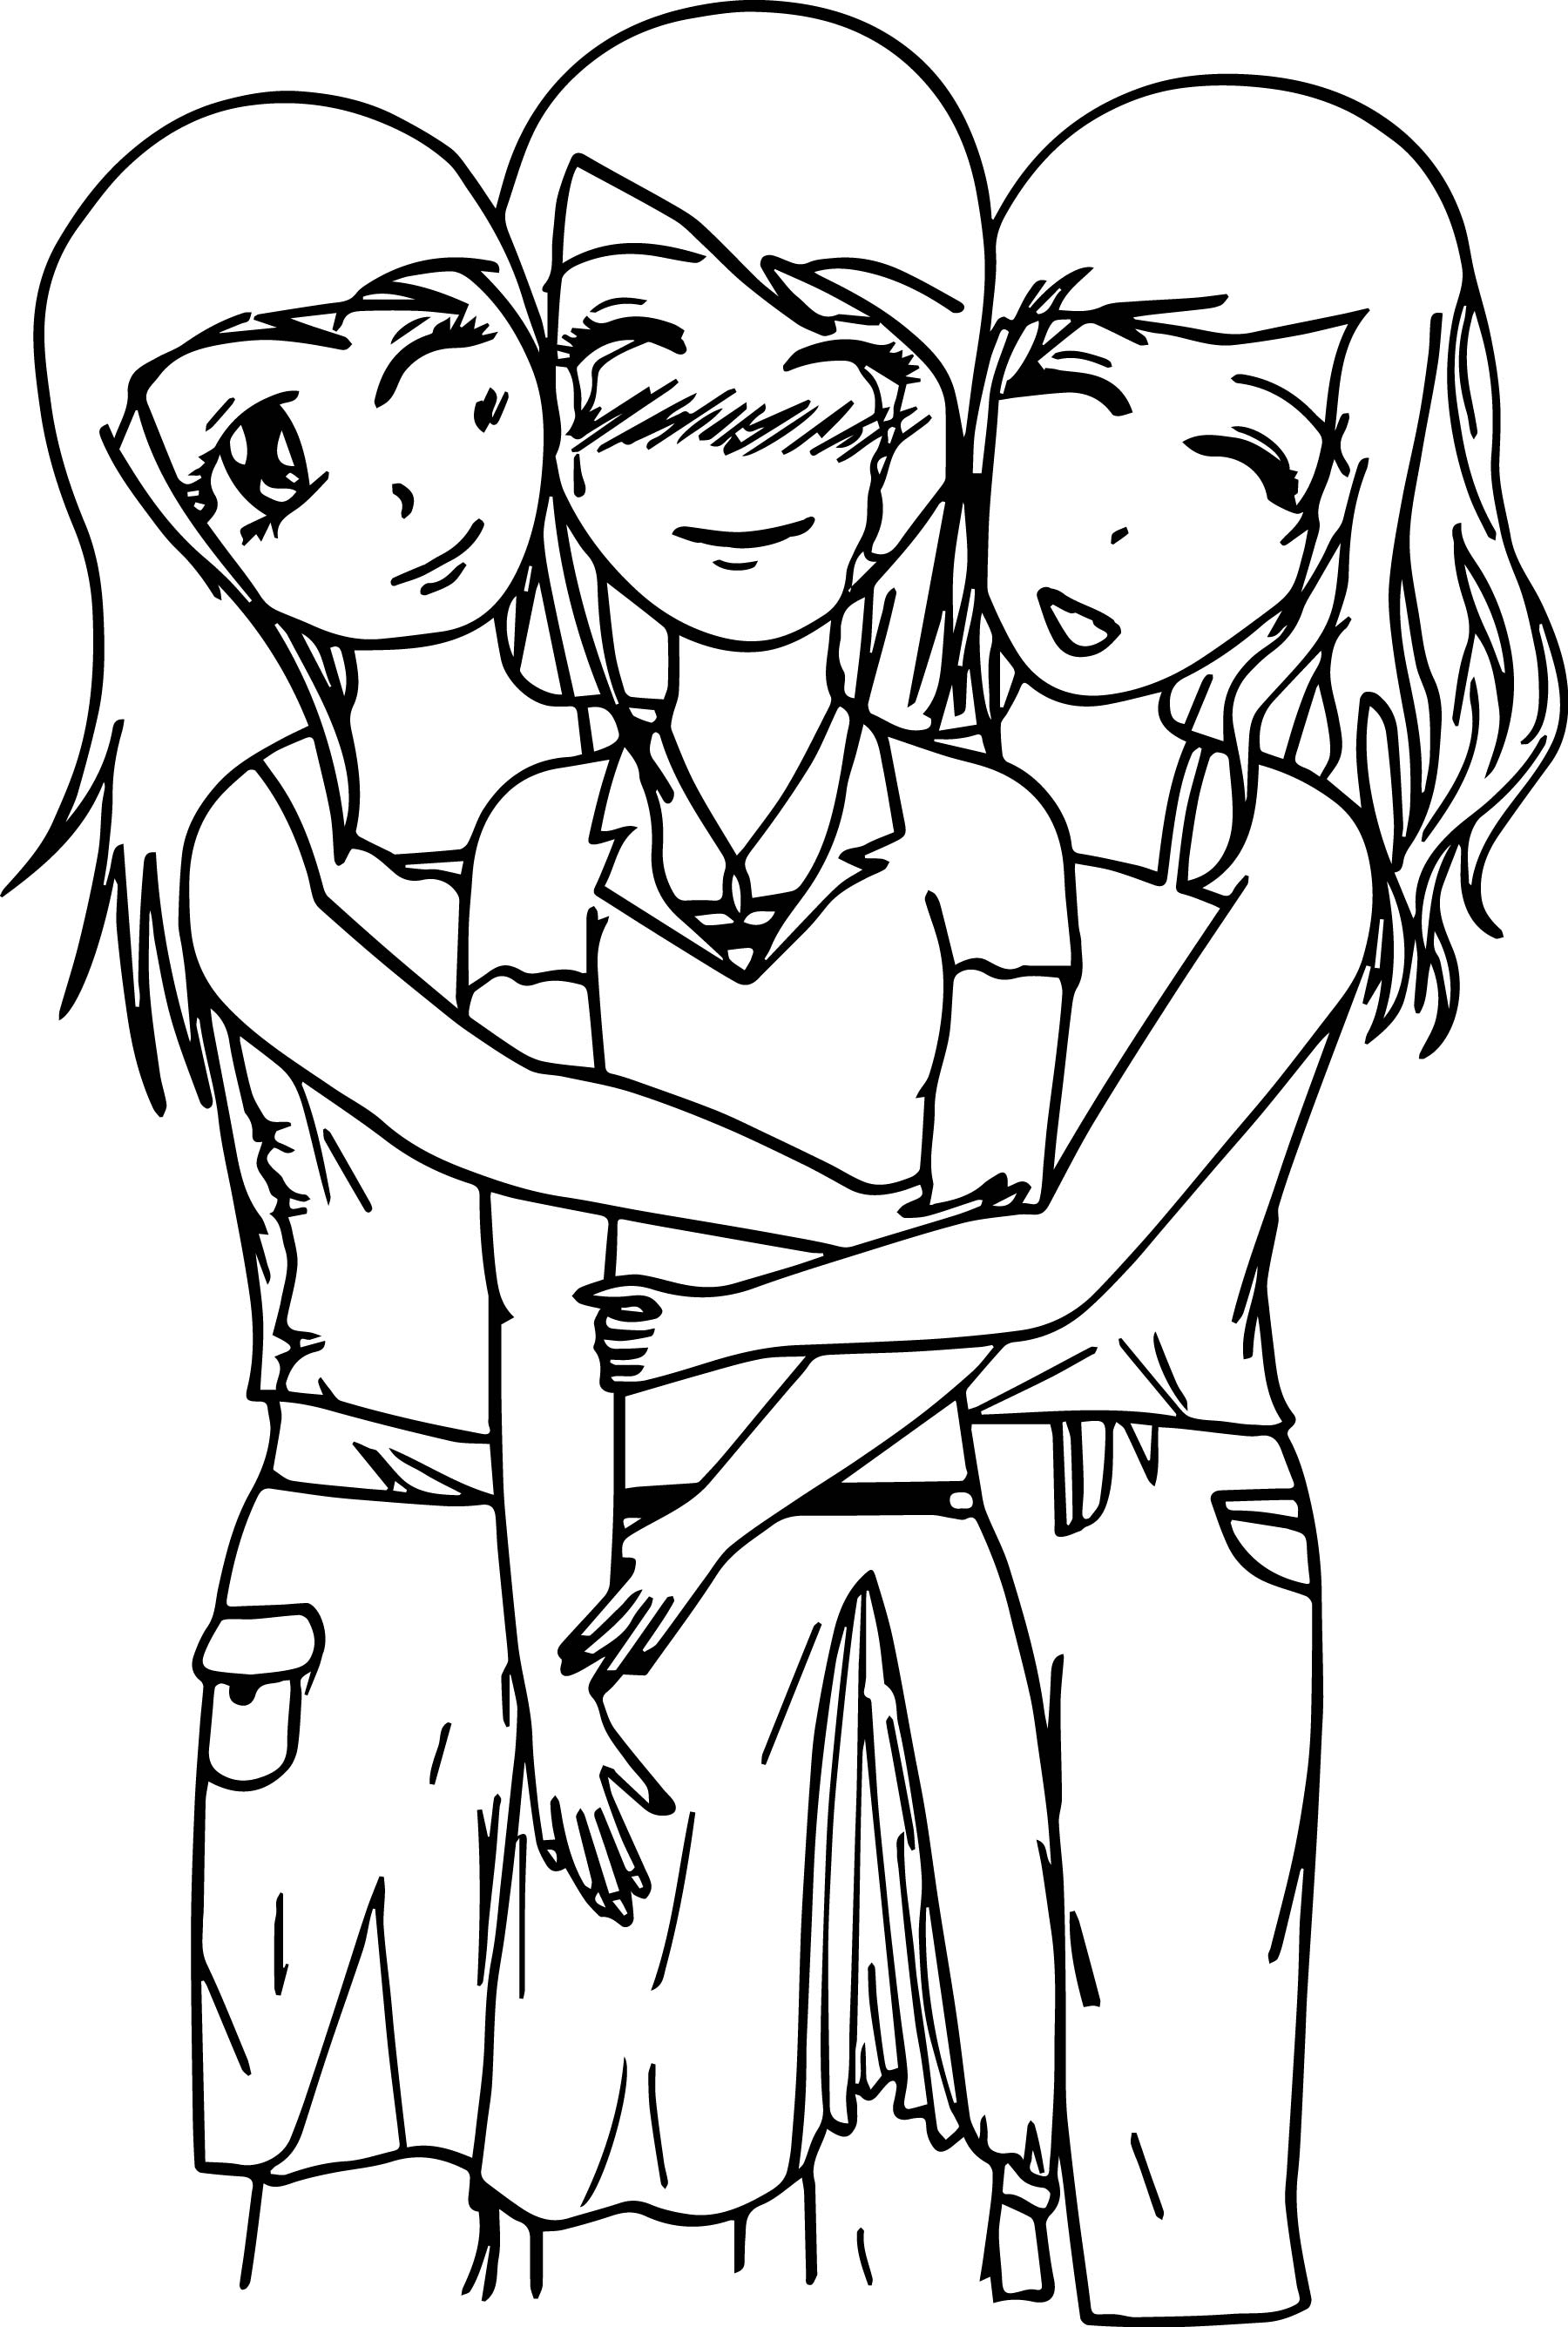 friends coloring pages friendship coloring pages best coloring pages for kids coloring friends pages